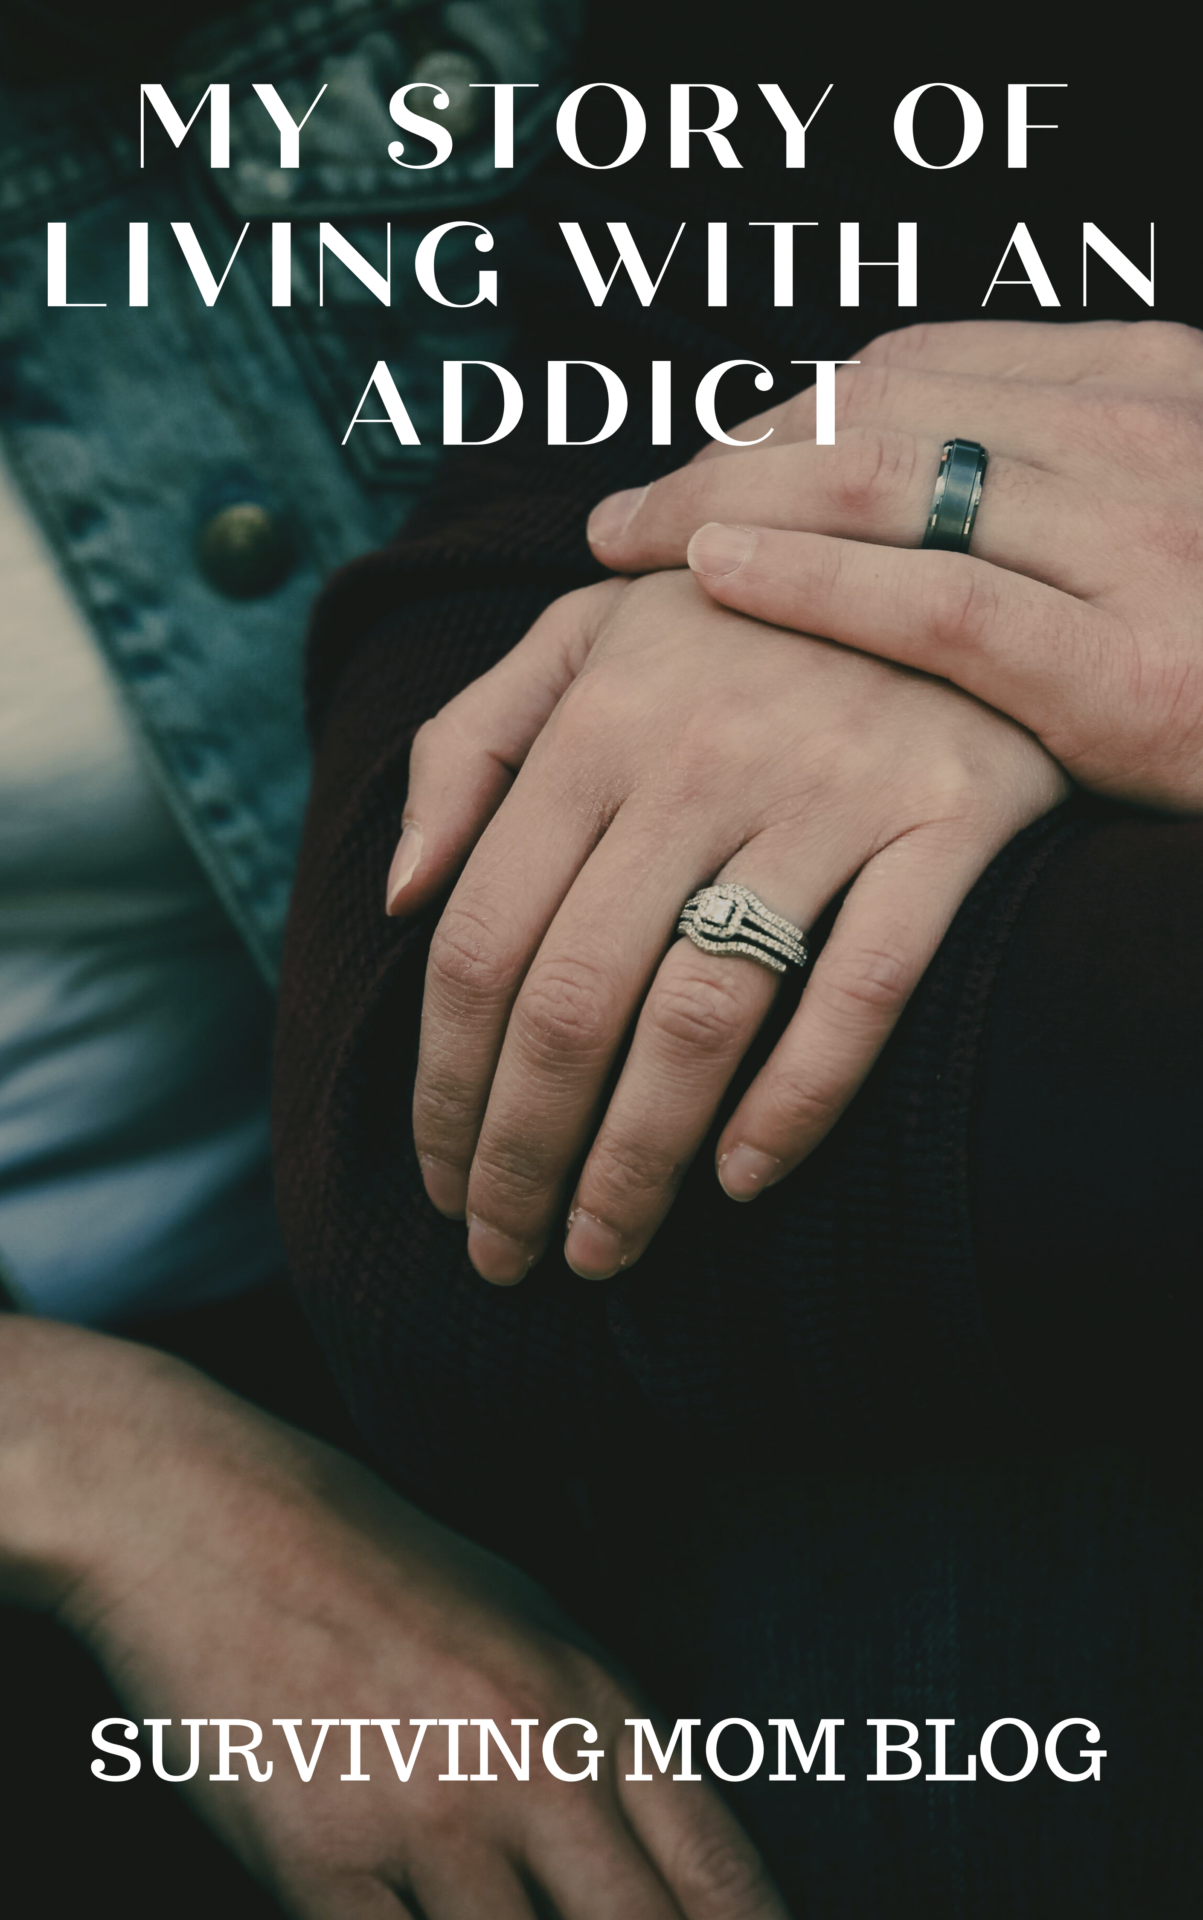 Living With an Addict: How to Cope With a Loved One's Addiction